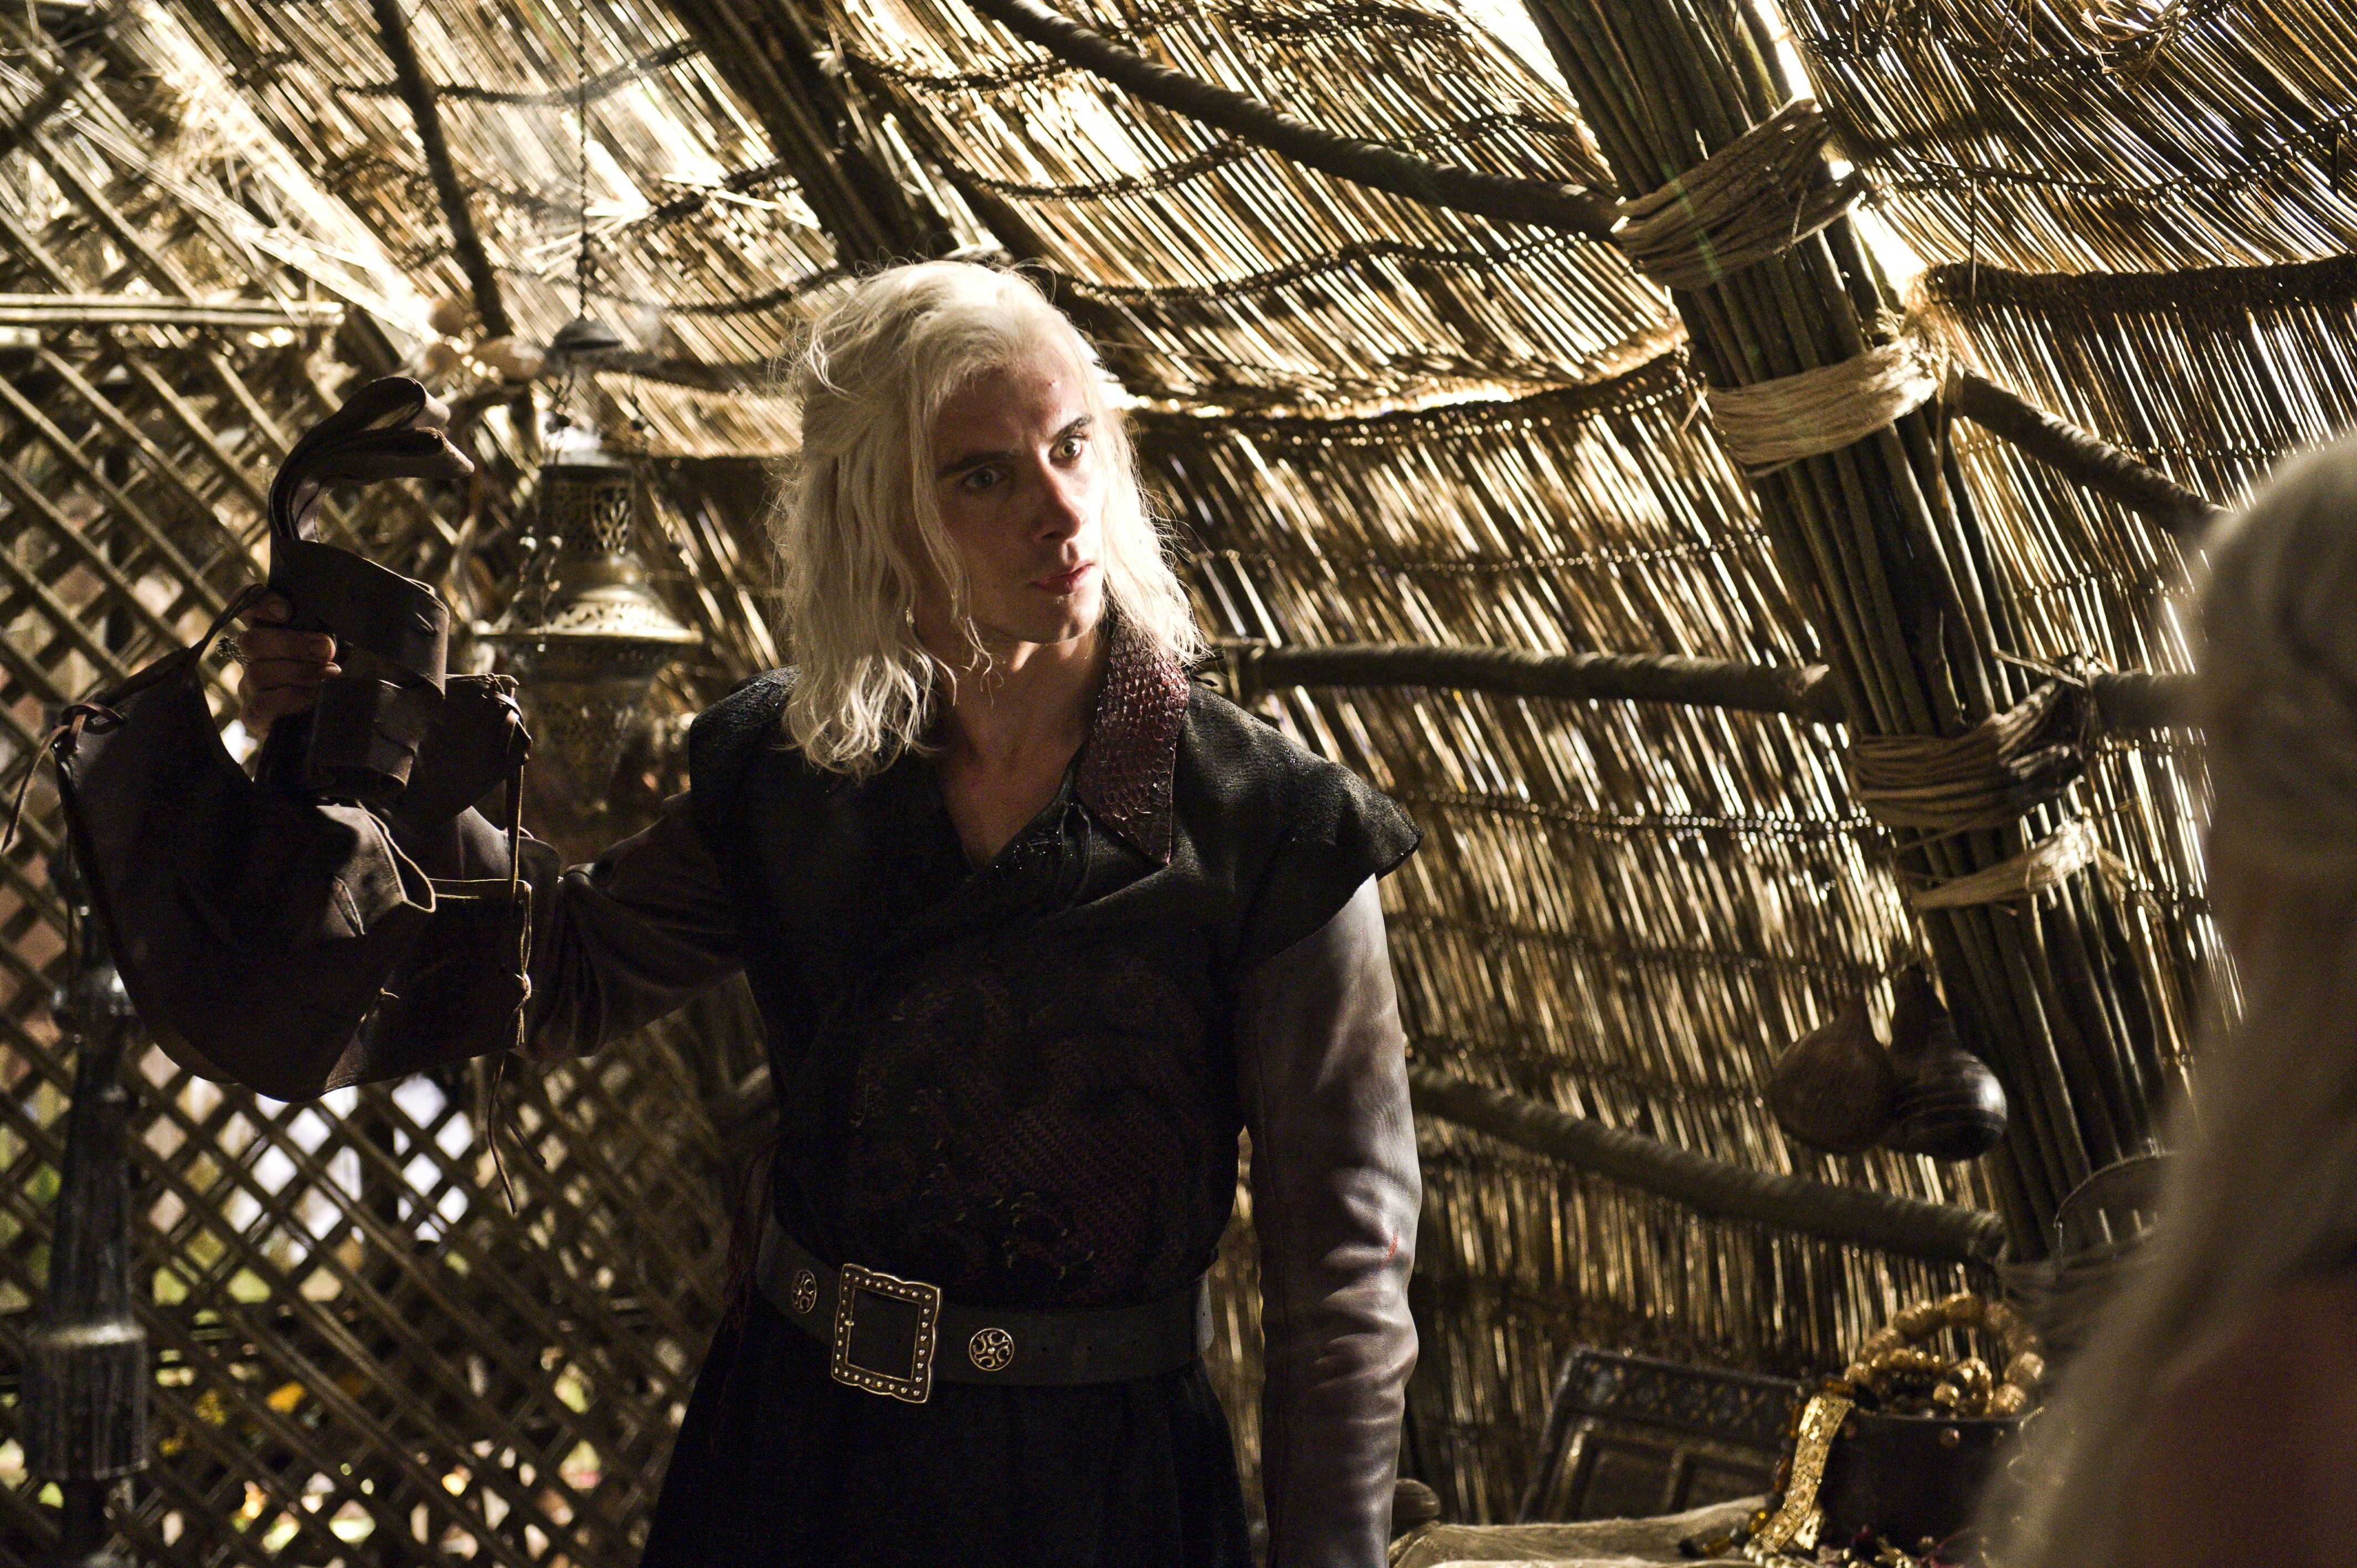 Game of Thrones Season 1 Episode Still imagens) Shows